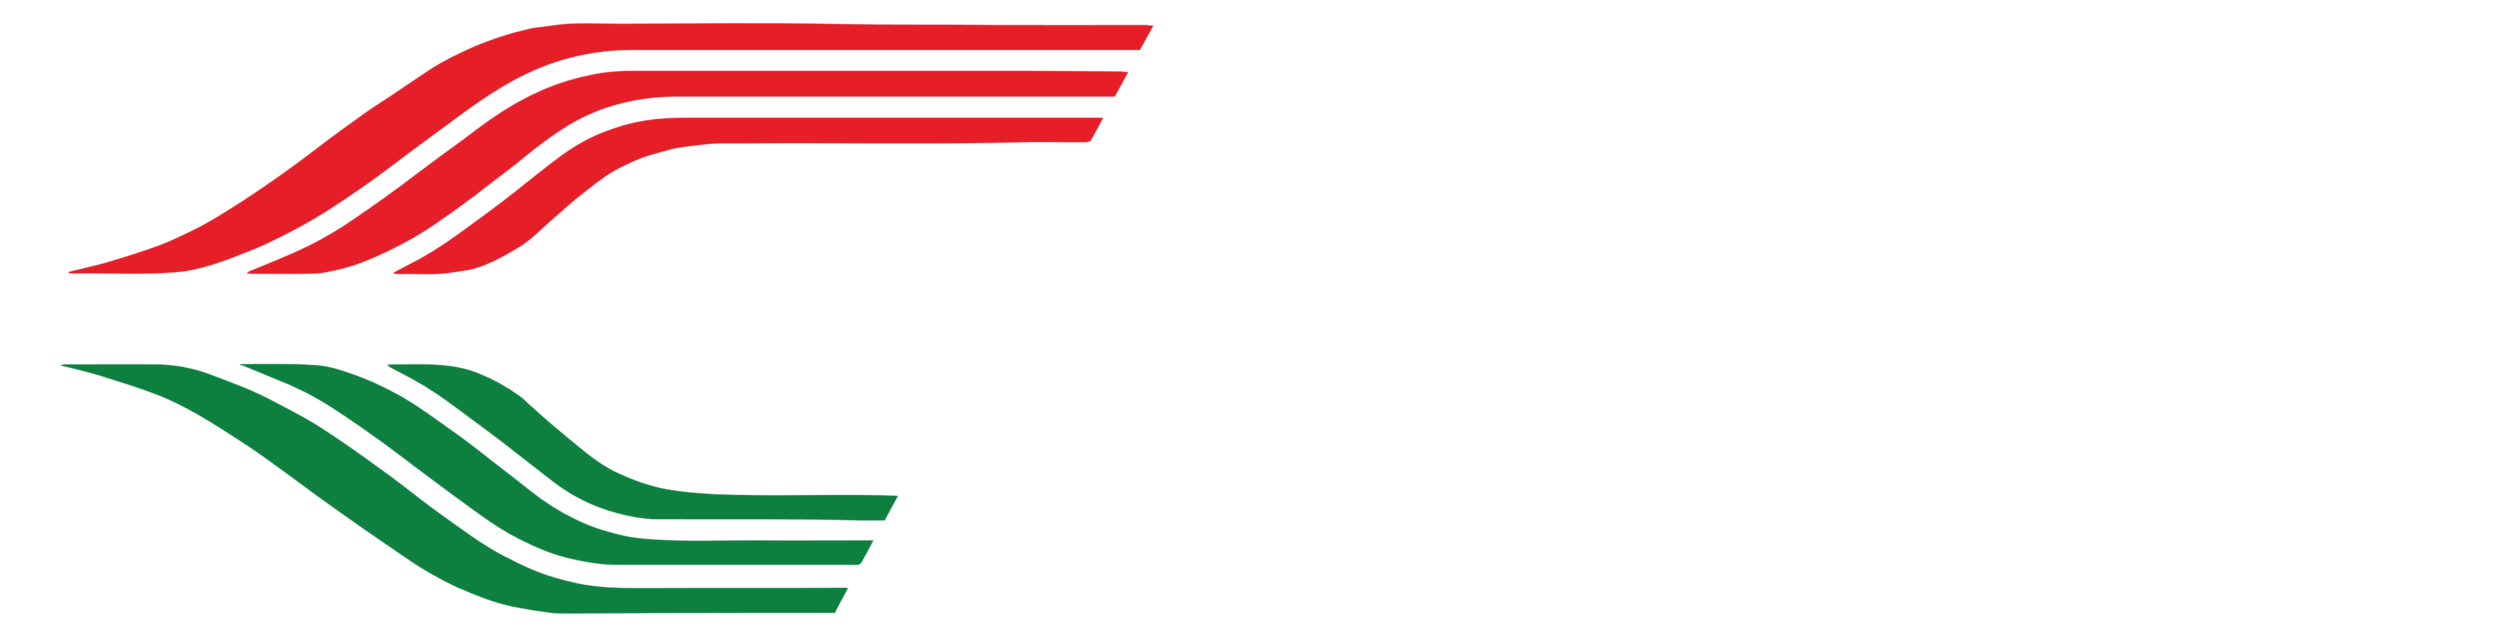 Carrizo_Oil_and_Gas_logo.png